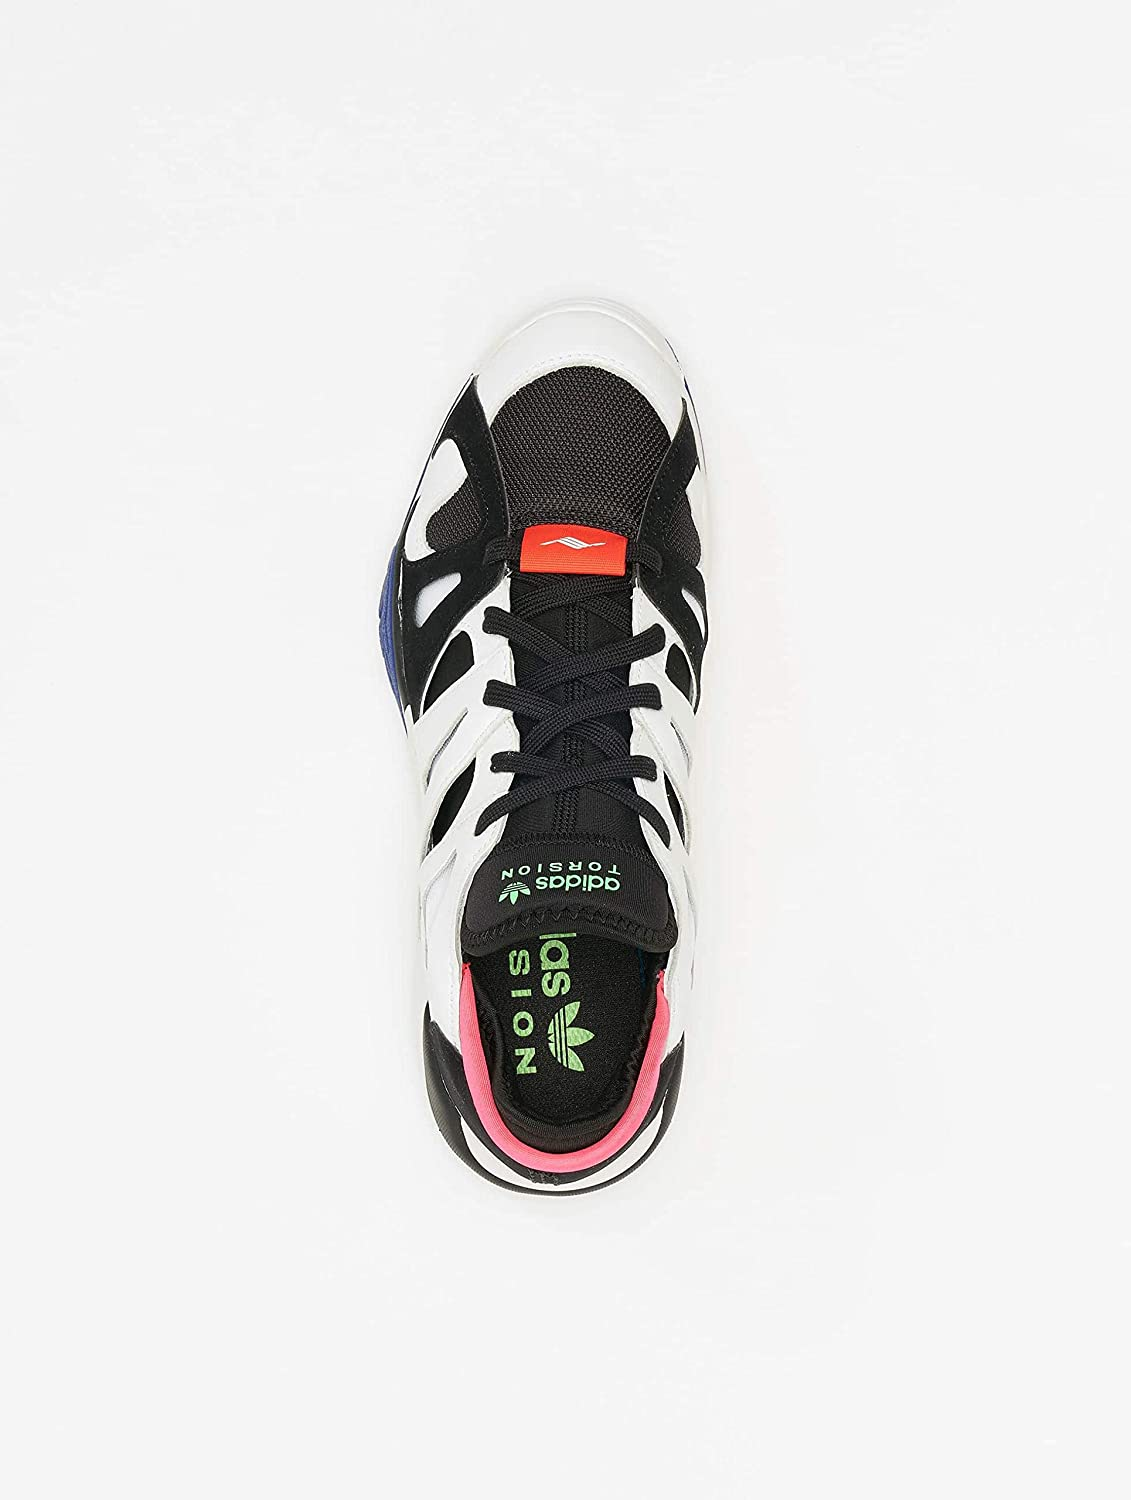 promo code f43c5 06973 Amazon.com   adidas Originals Dimension Lo Shoes   Shoes